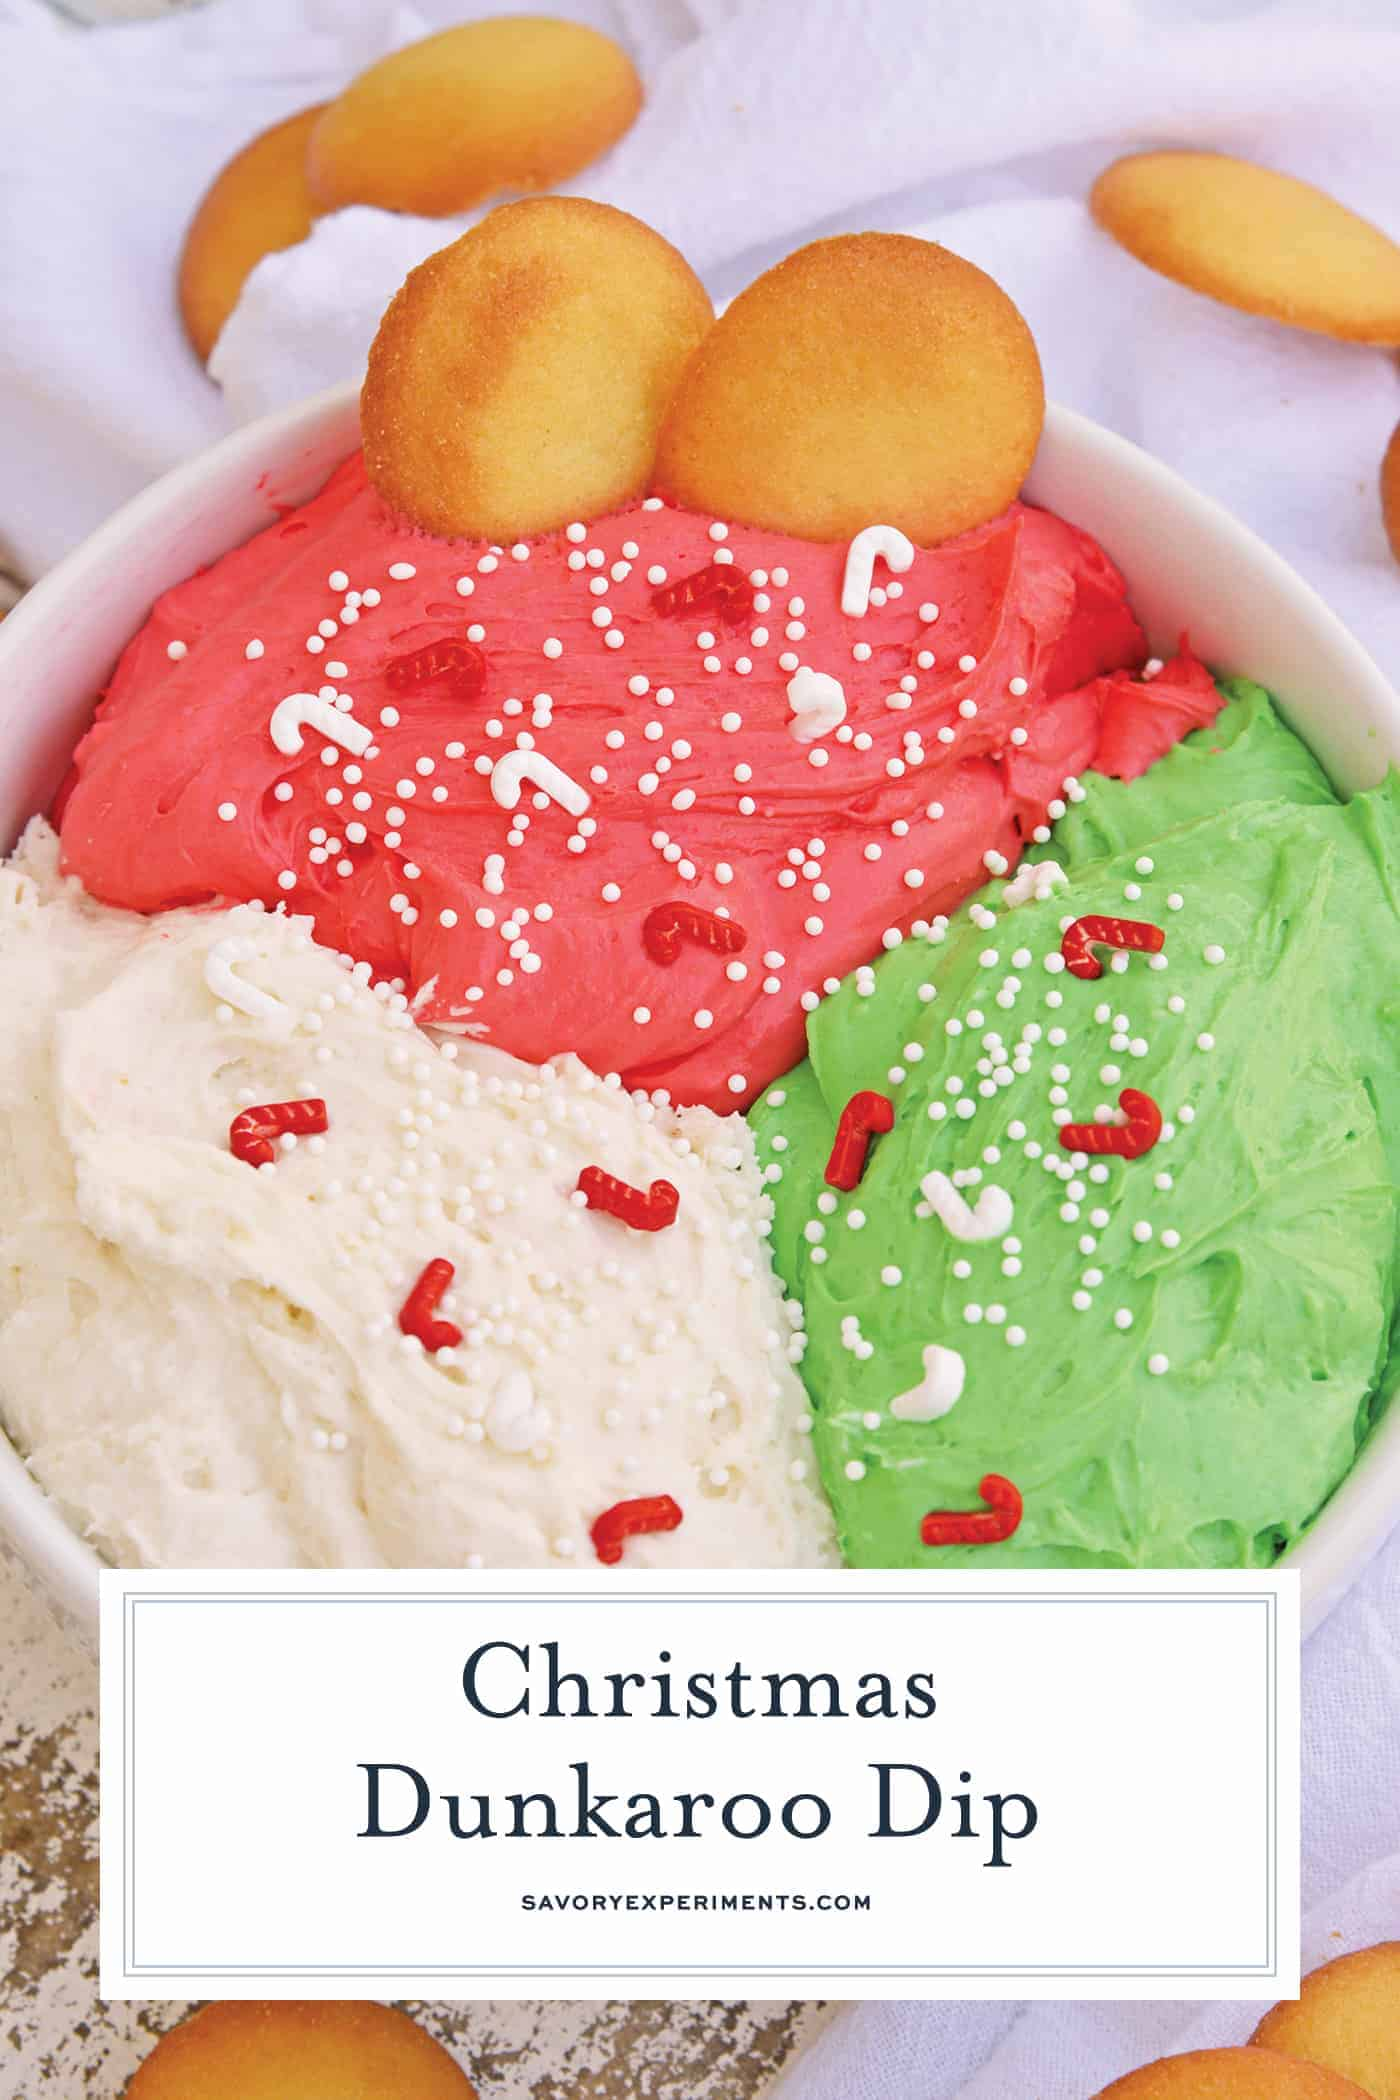 This Christmas Dunkaroo Dip recipe is a quick, sweet and festive holiday dessert dip that the entire family will love. Ready in just a few minutes! #dunkaroodiprecipe #dessertdips #howtomakedunkaroodip www.savoryexperiments.com